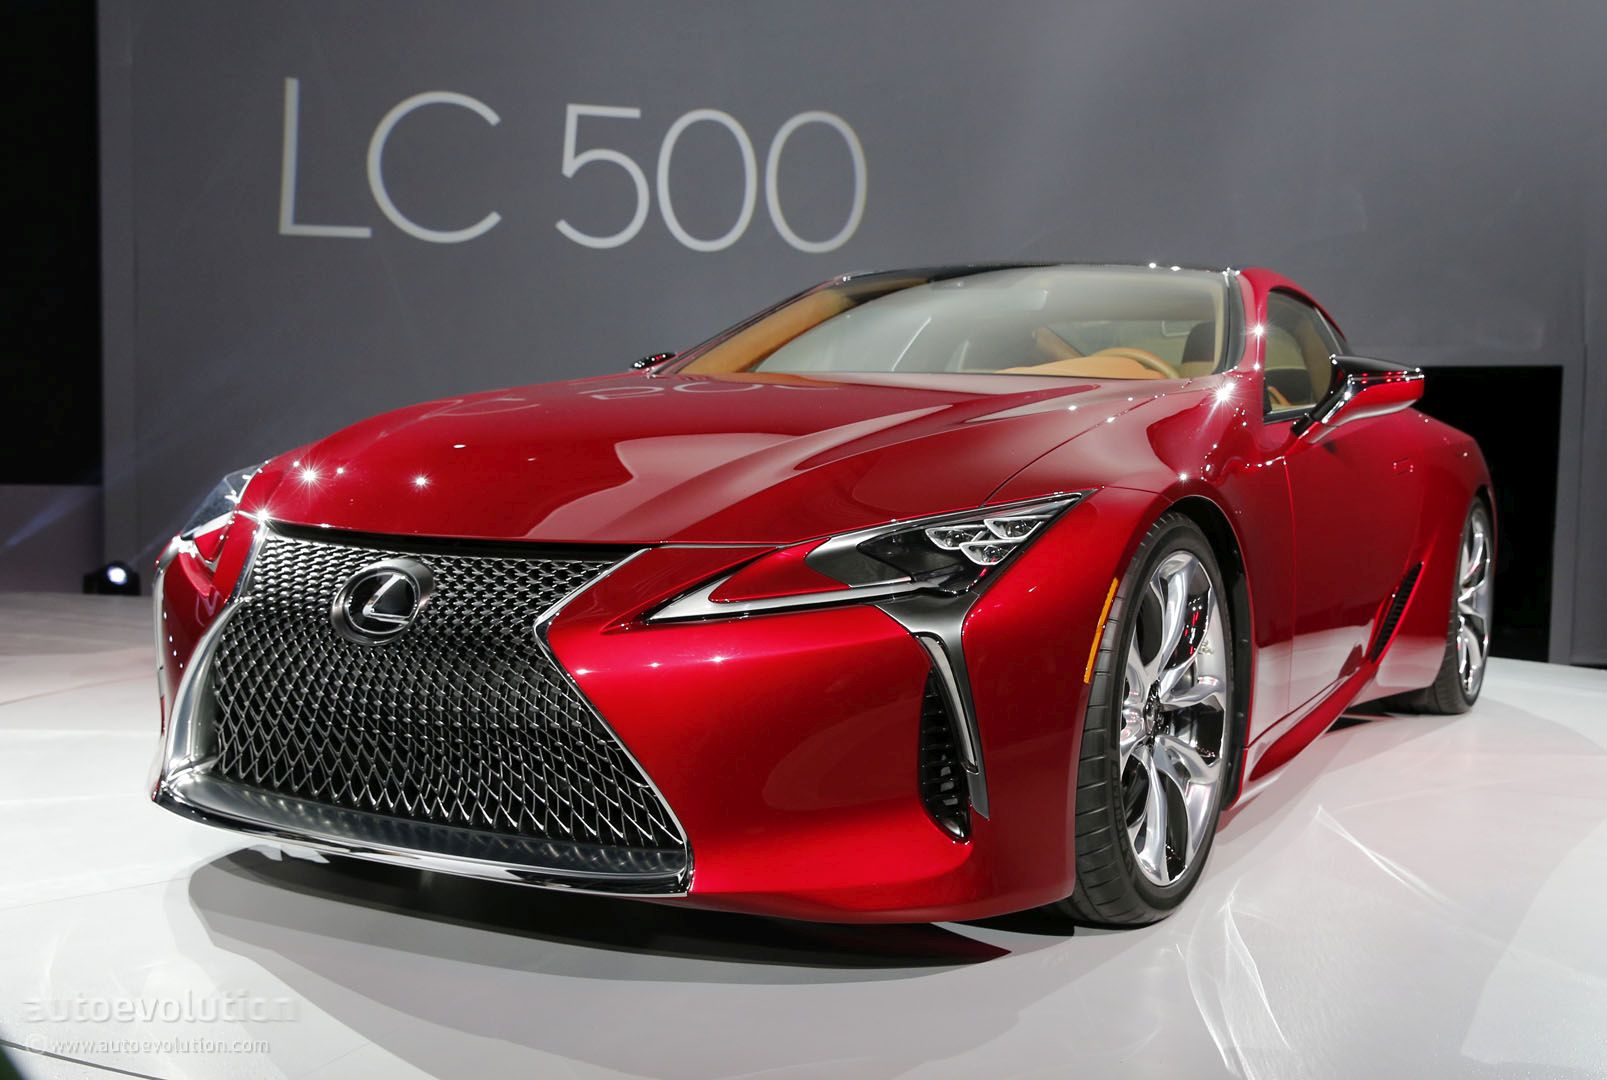 2018 Lexus LC 500 Priced From $92,000 For the U.S. Market ...